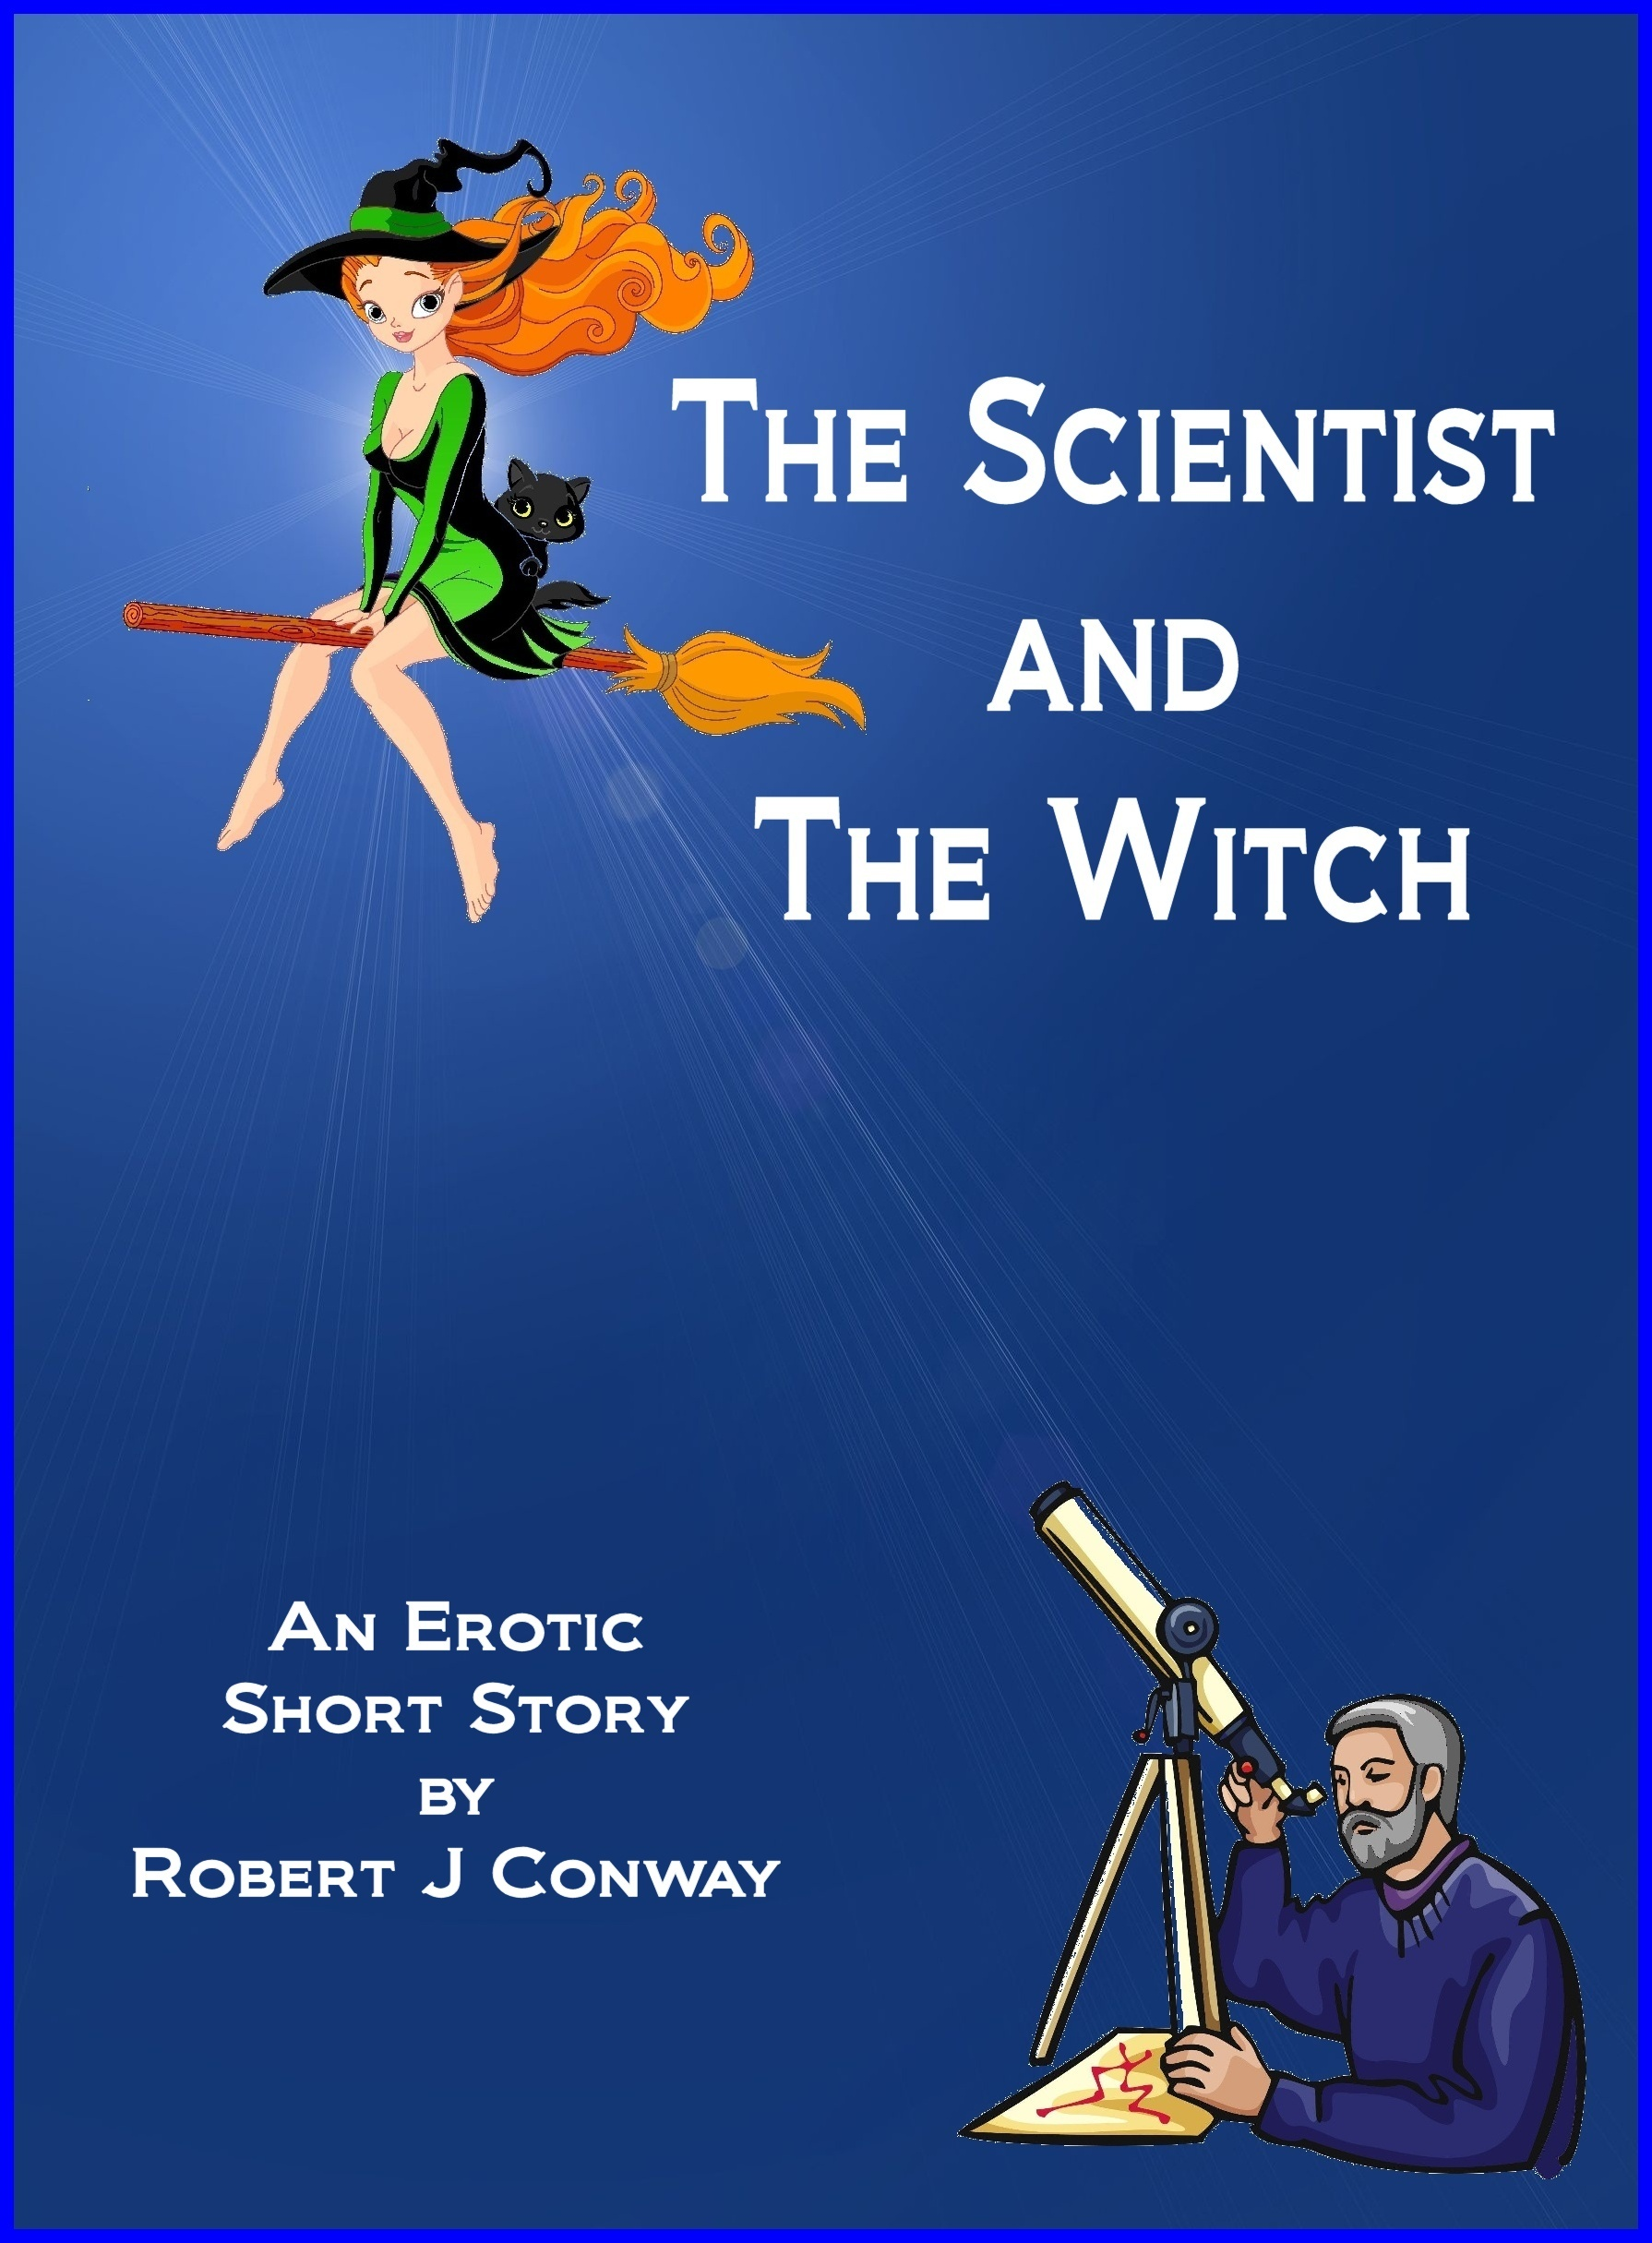 The Scientist and the Witch